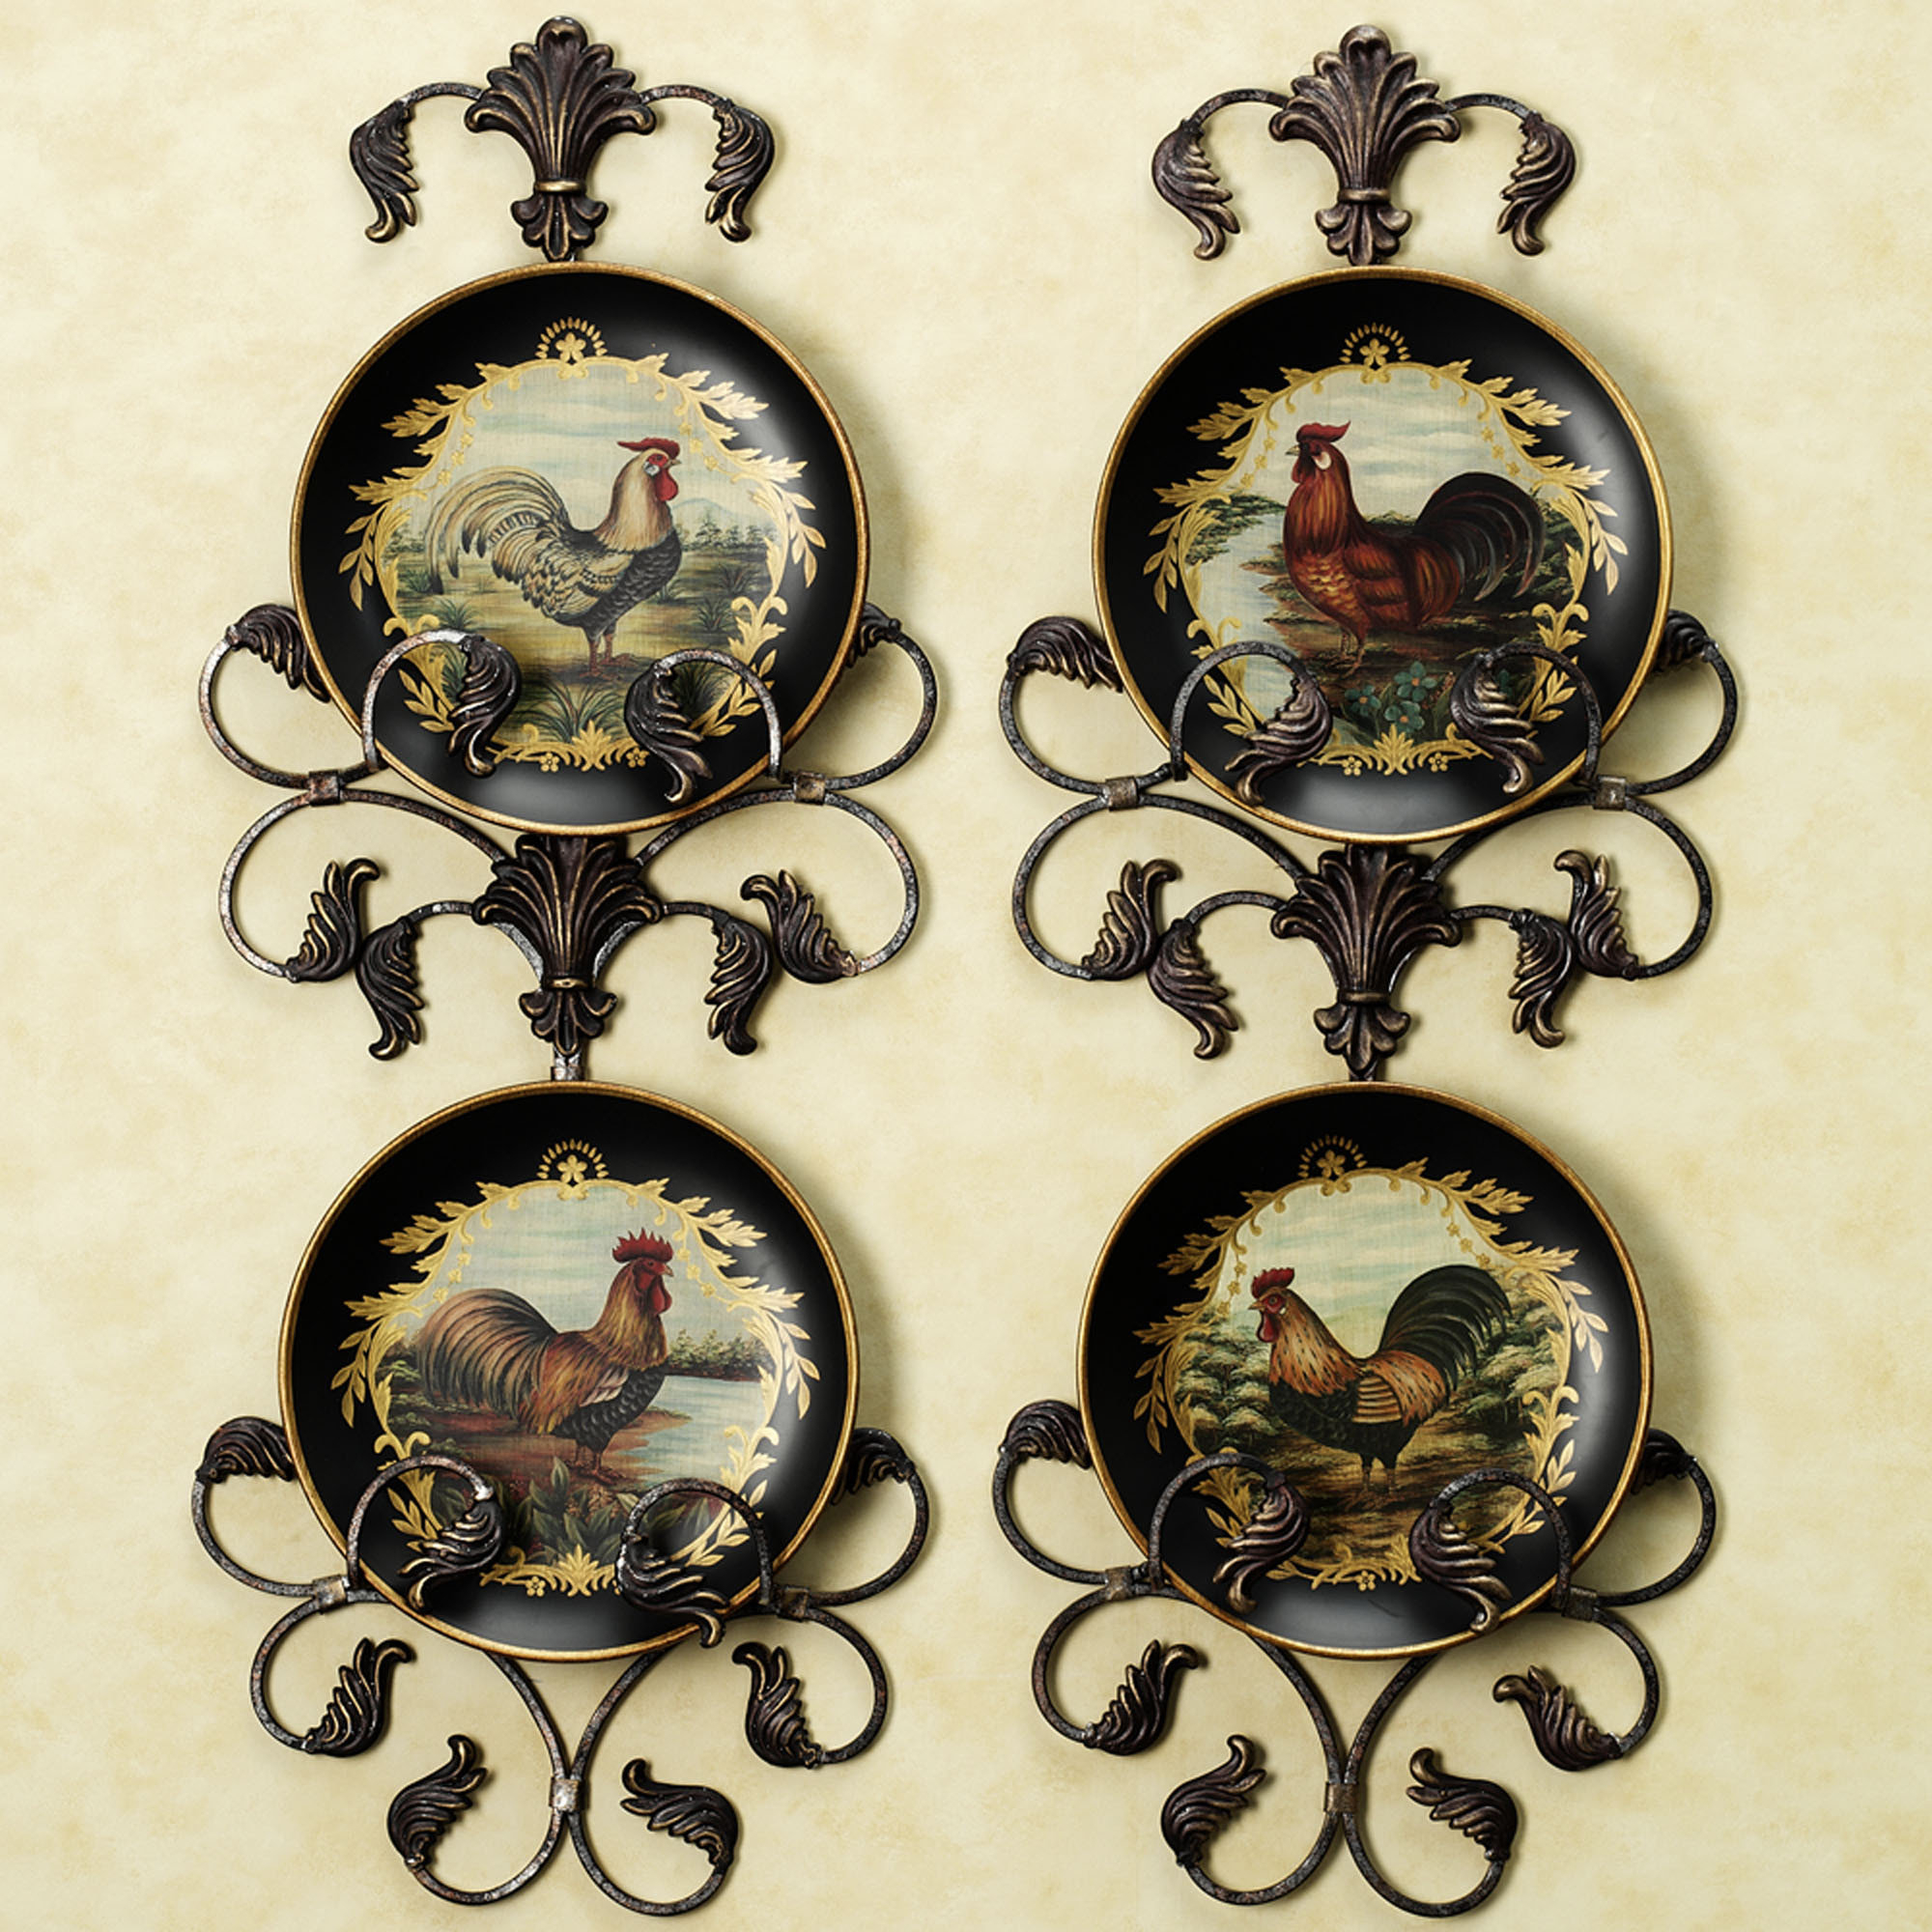 Decorative Plates For Kitchen Ideas On Foter